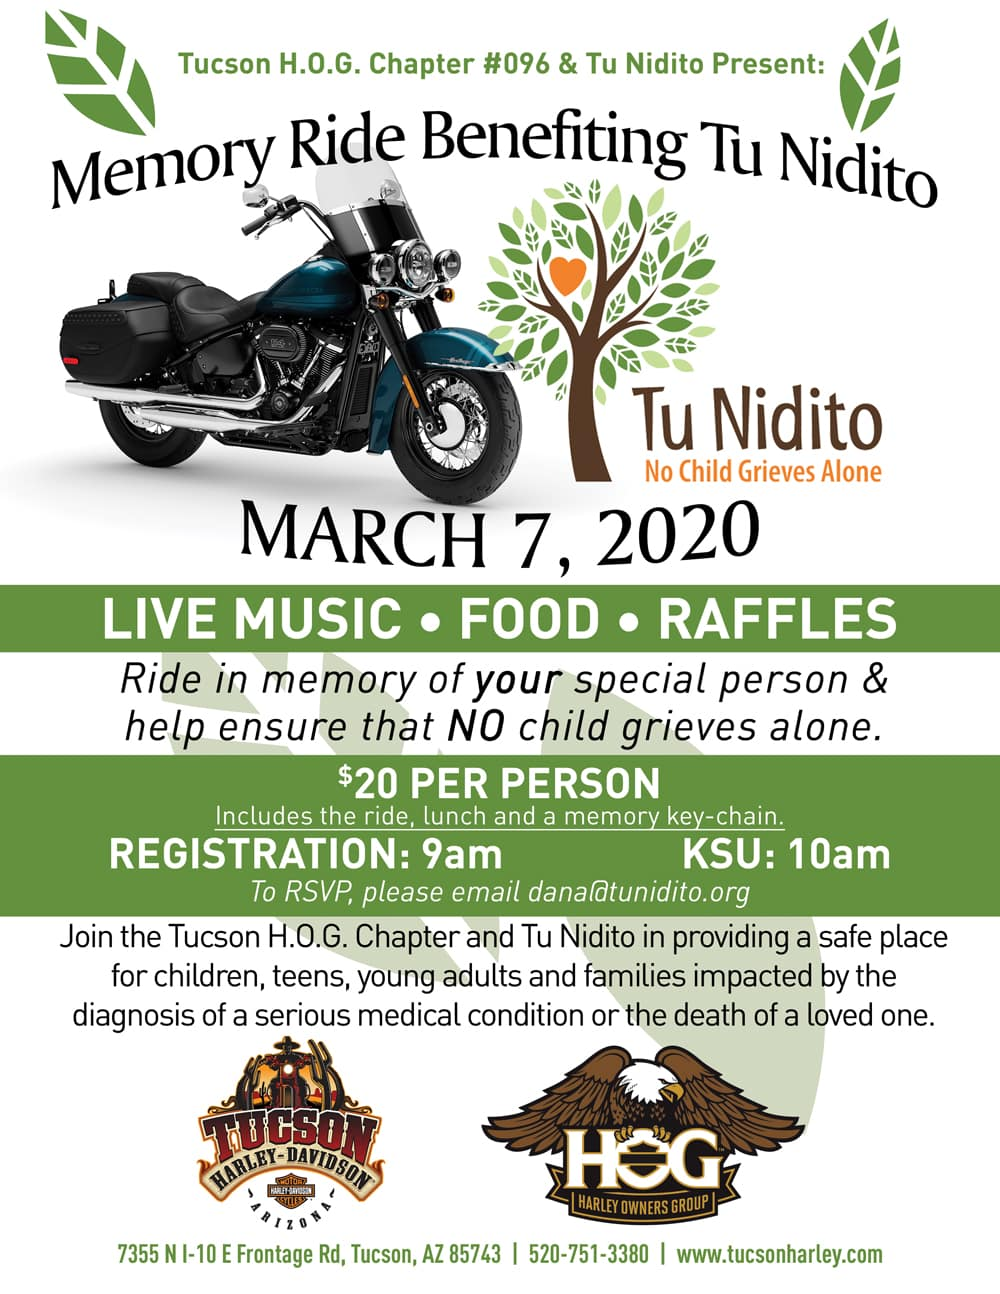 Memory Ride Benefiting Tu Nidito, March 7, 2020.